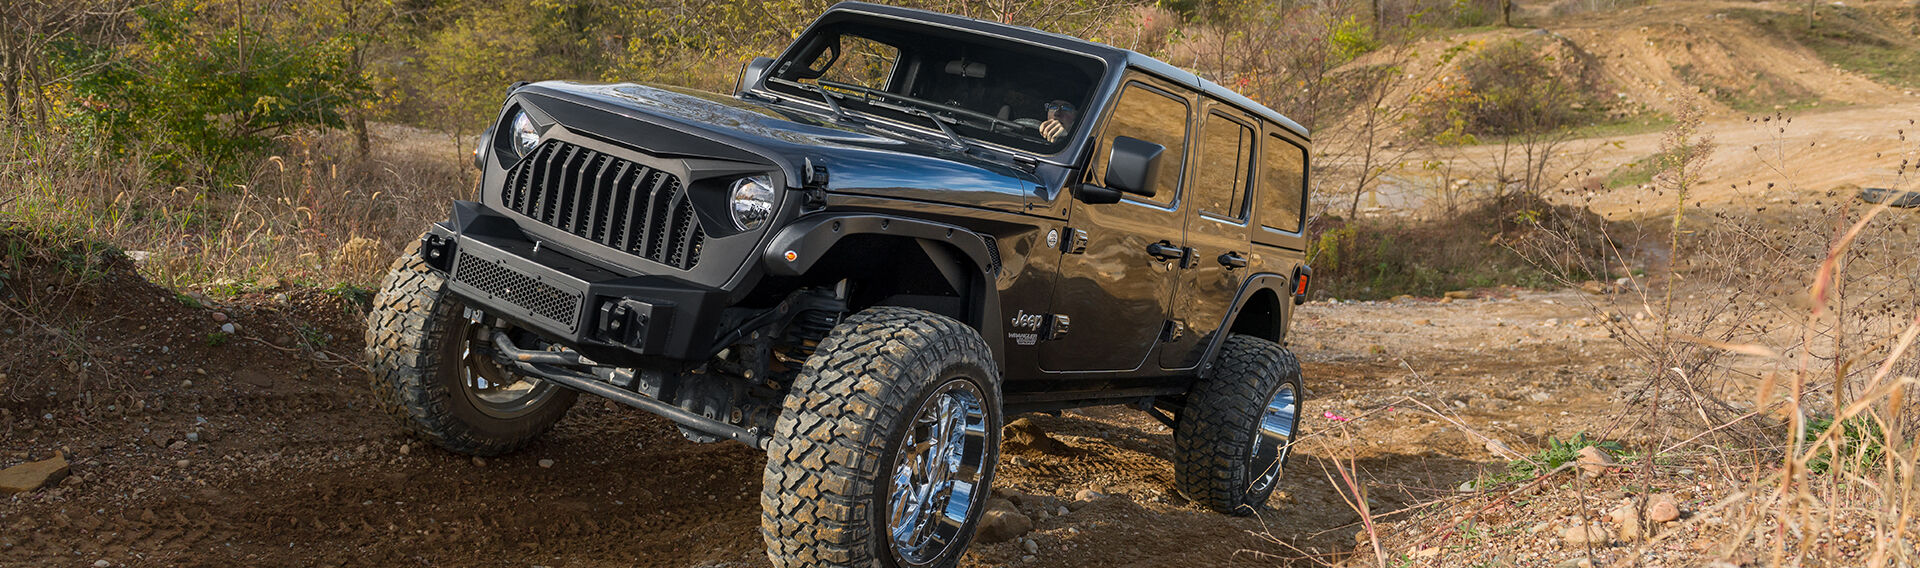 TRAIL ARMOR FENDER DELETE KIT Save 10% off Now Thru April 18th SHOP NOW